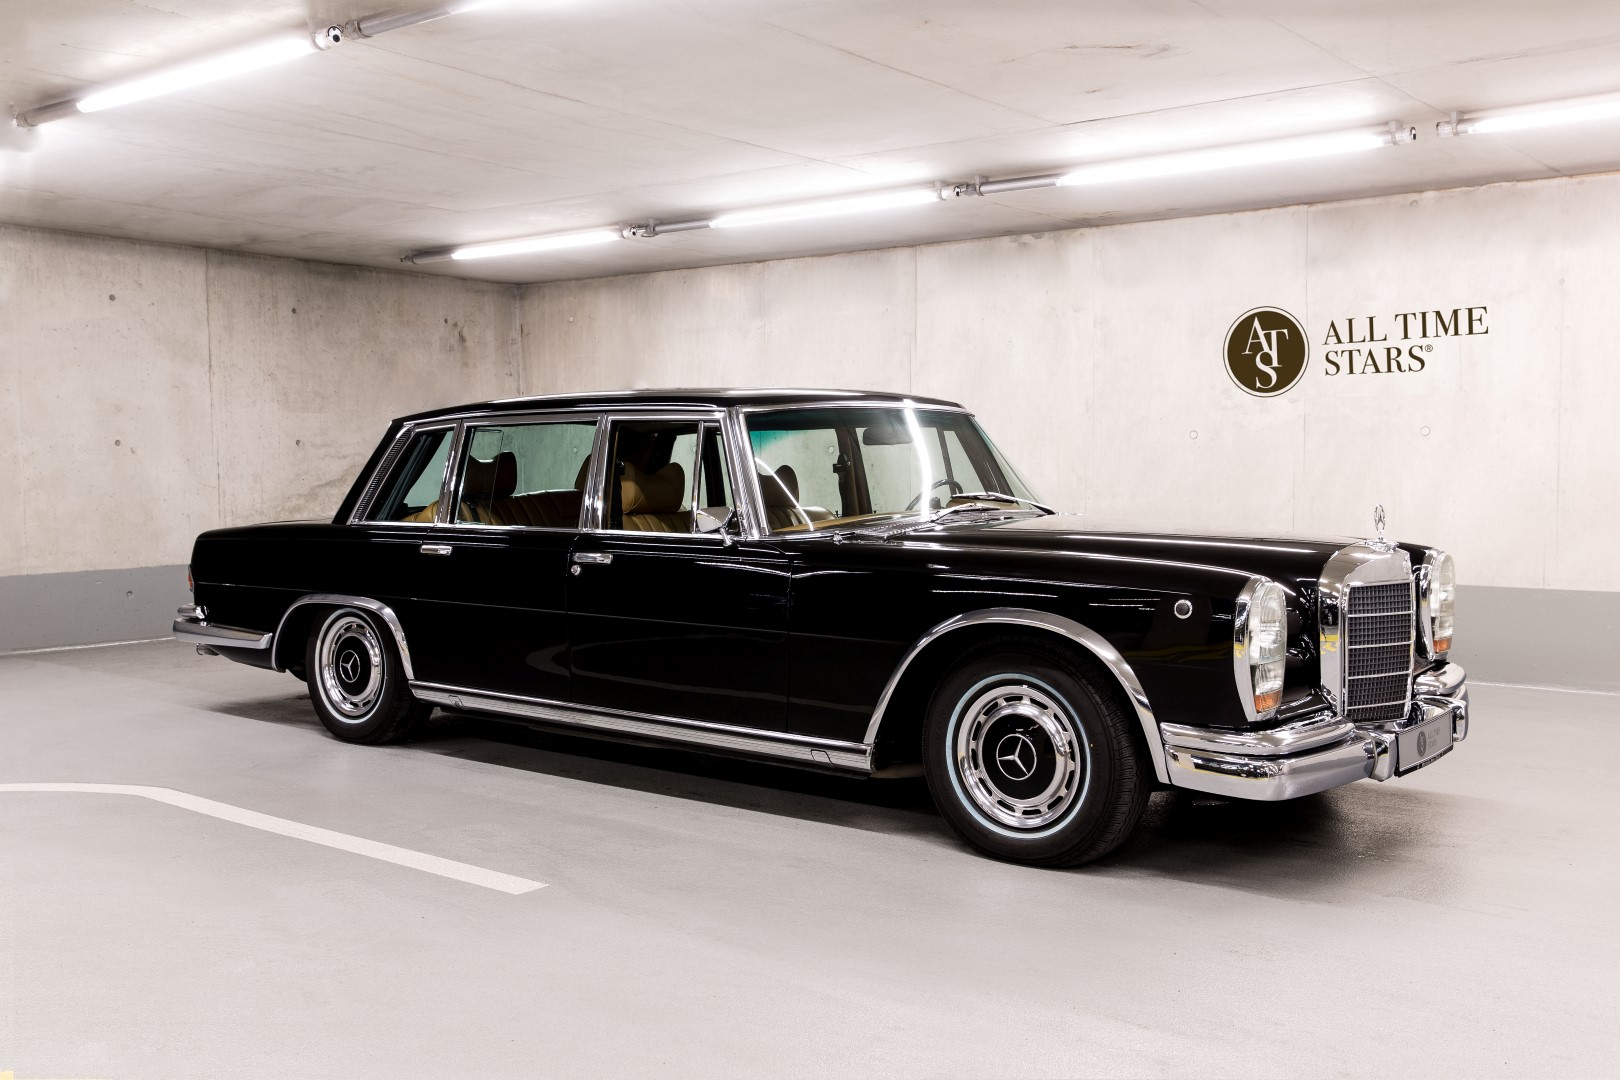 All time stars mercedes benz 600 w 100 for Mercedes benz 600 for sale